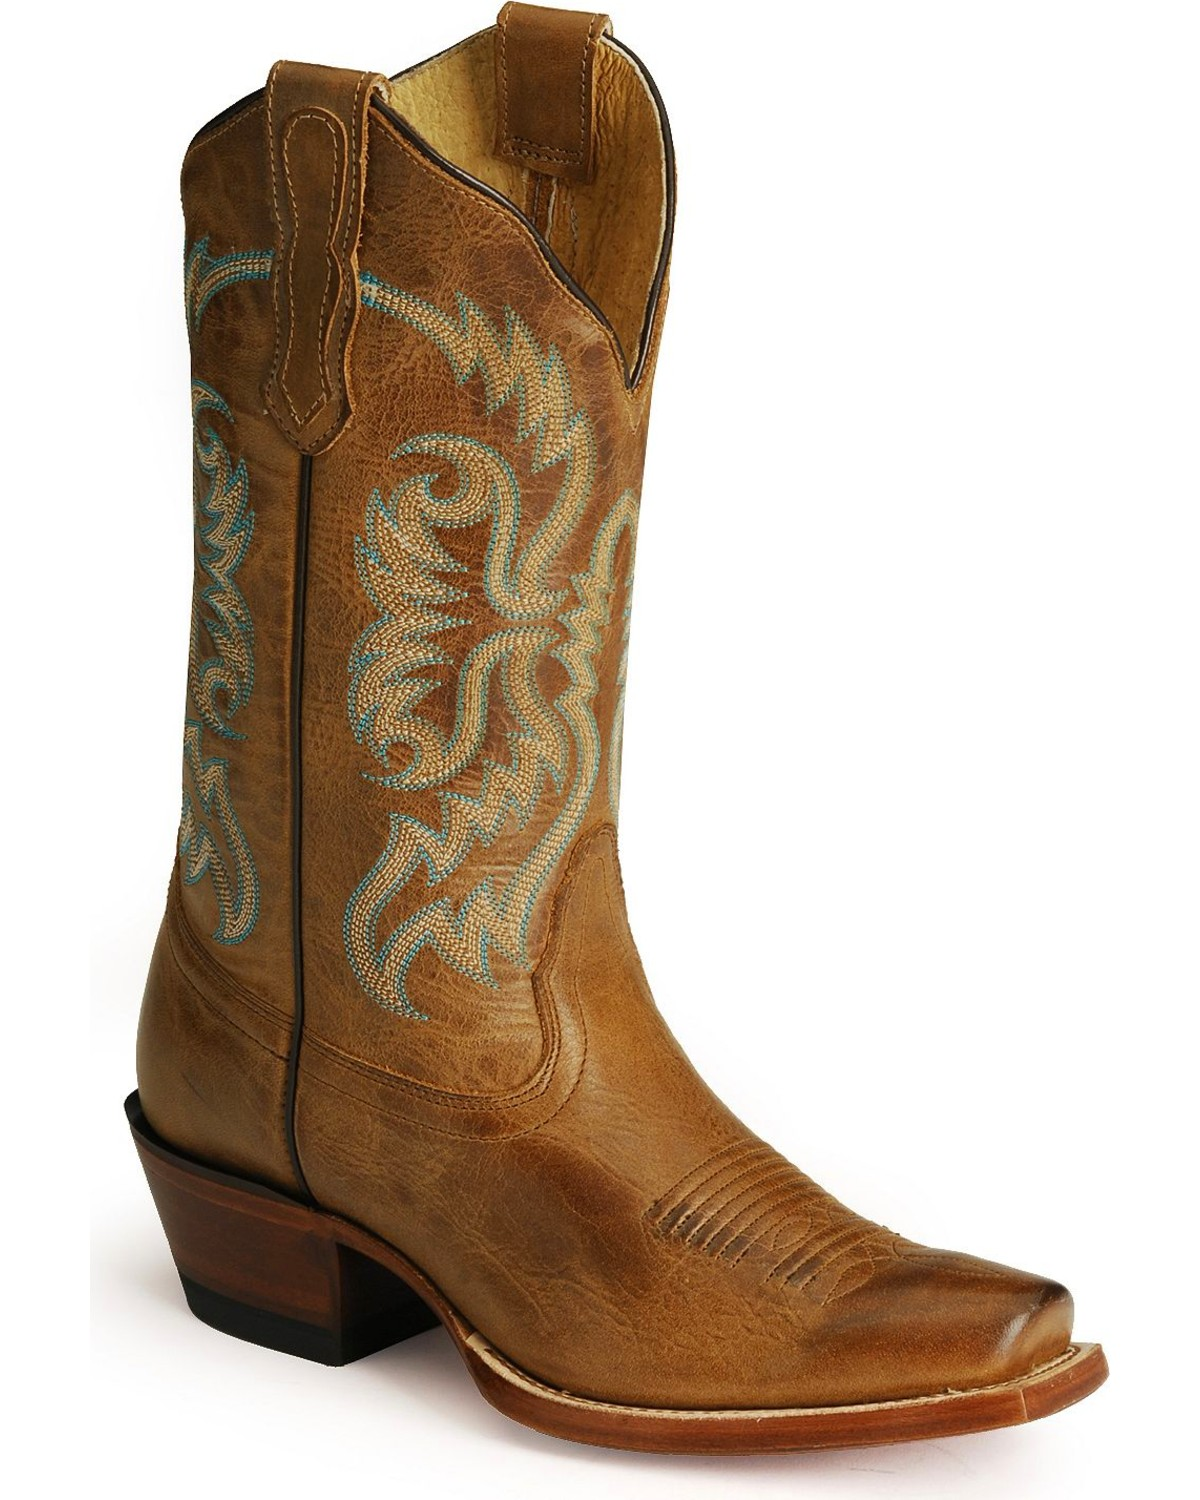 Nocona Women's Old West Western Boots